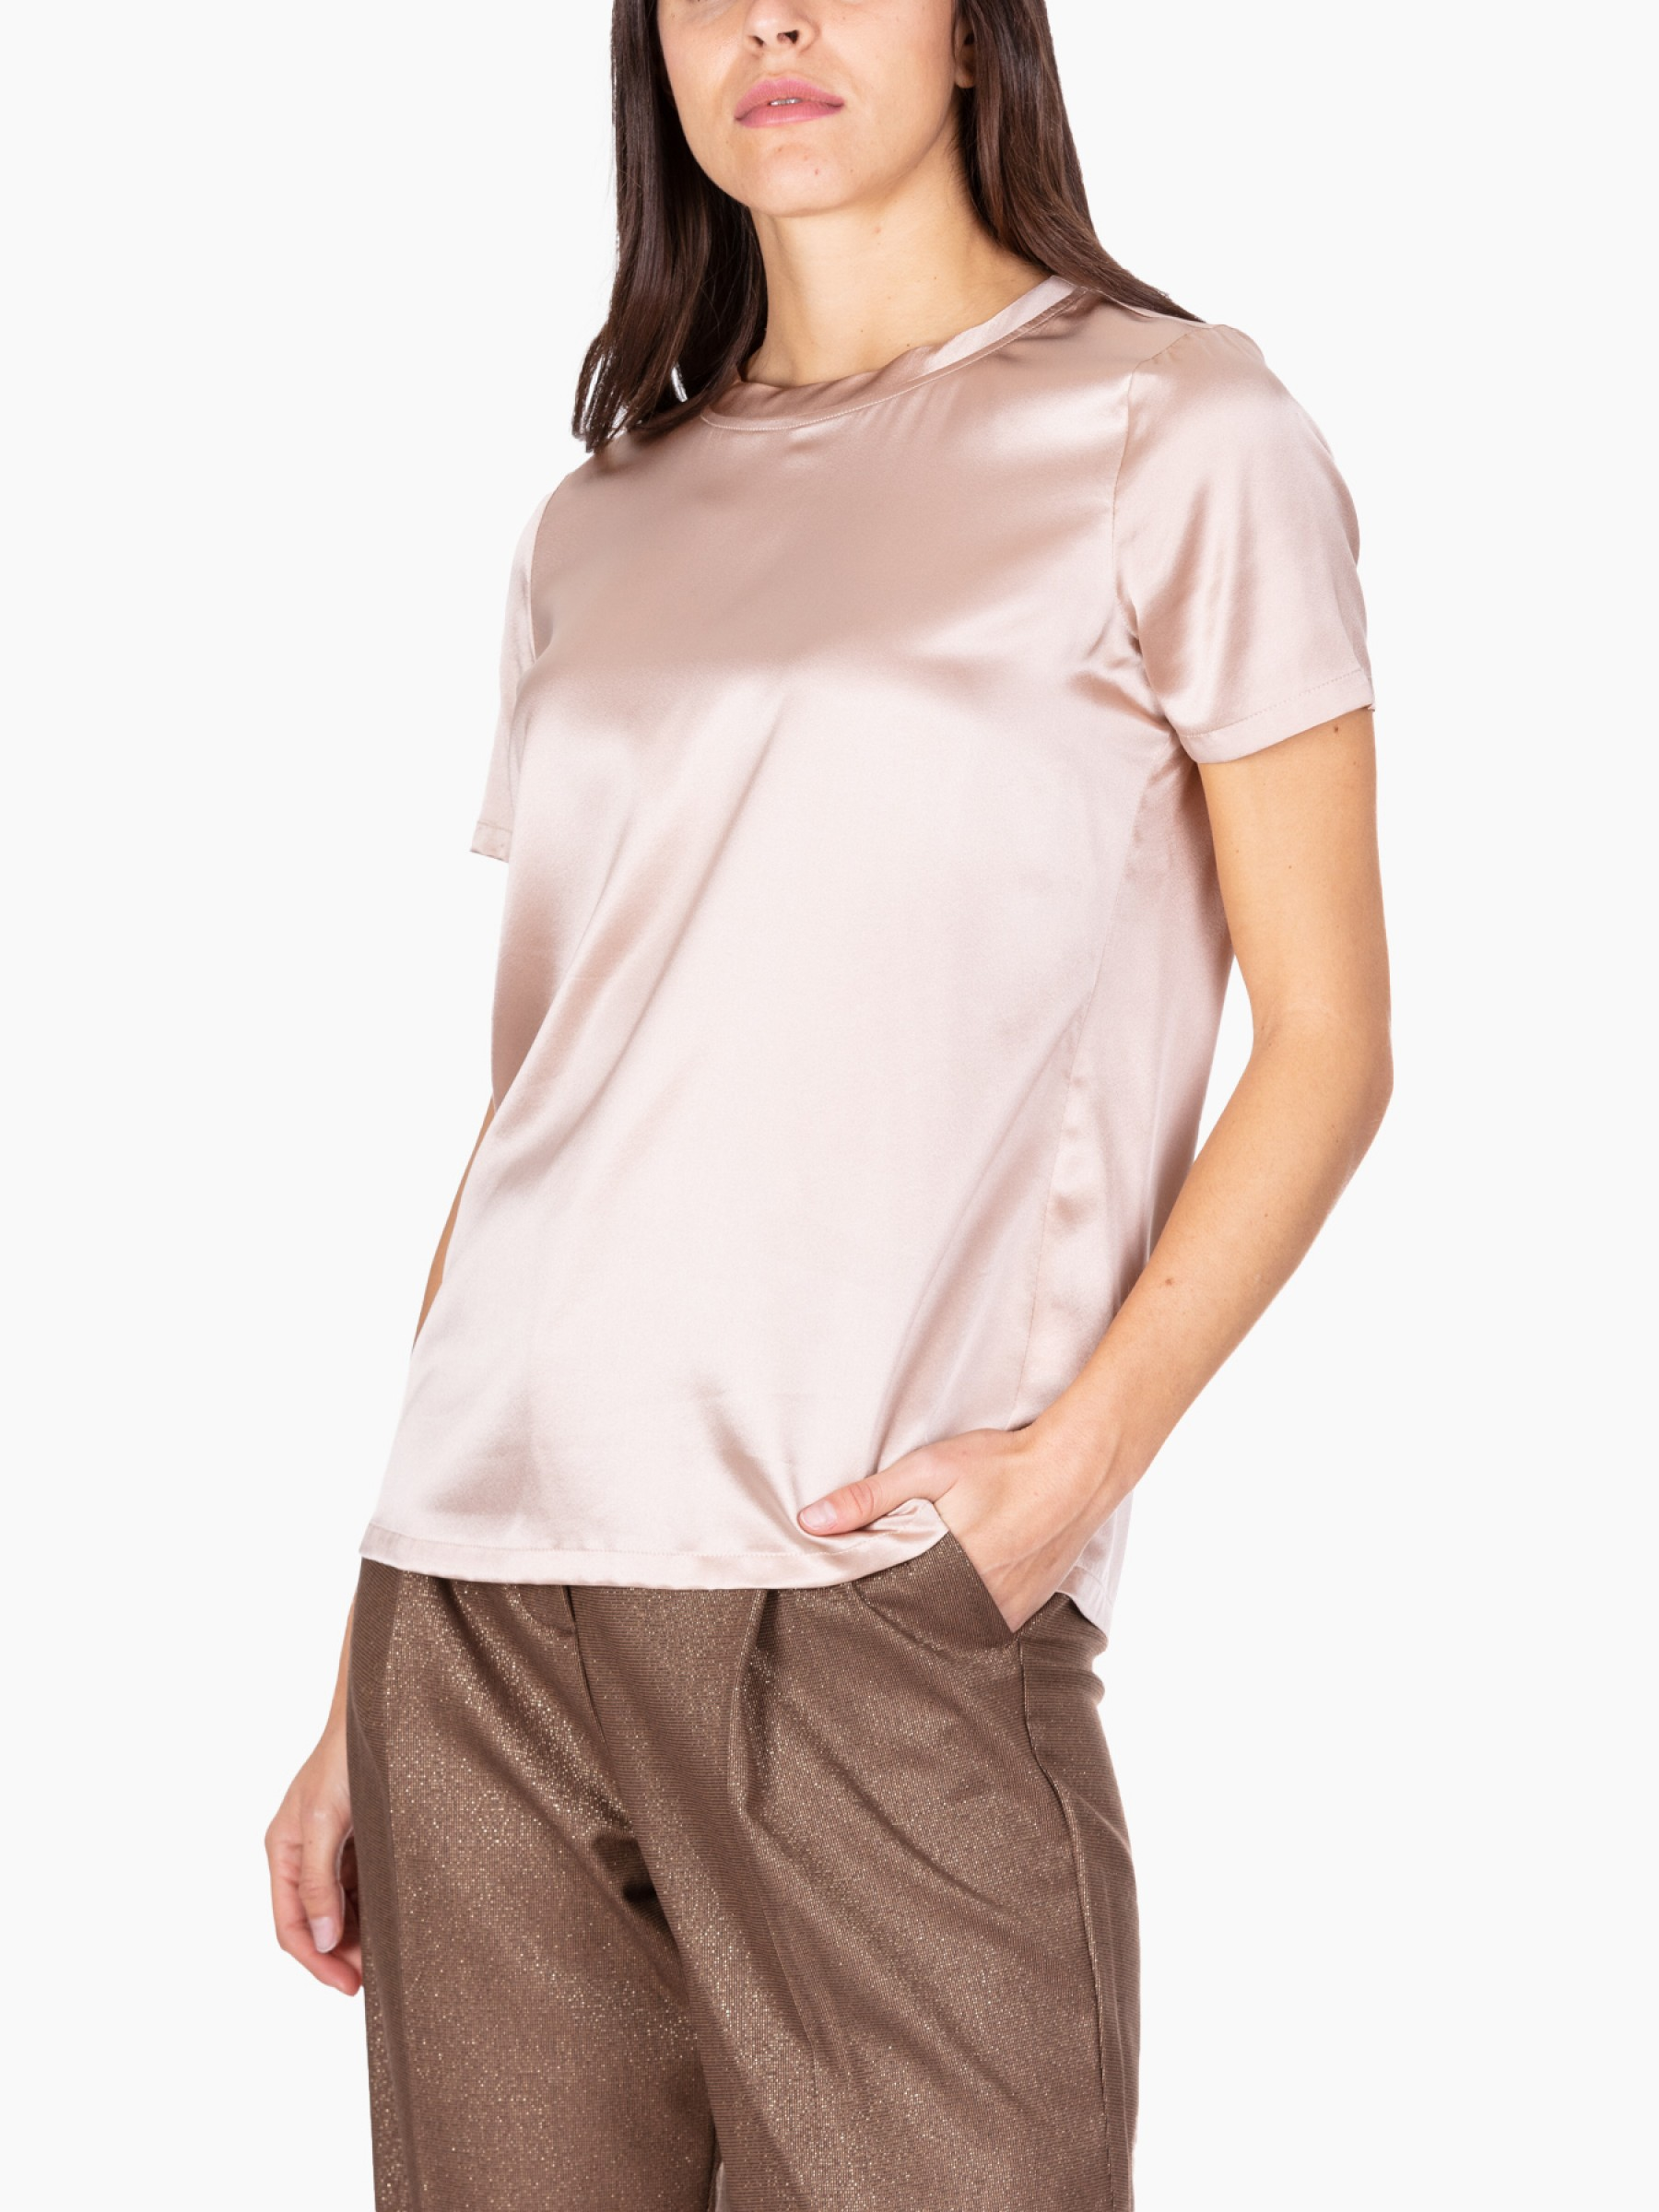 Kaos Blusa in seta stretch AI2020 MI1NT012-1003-NUDO